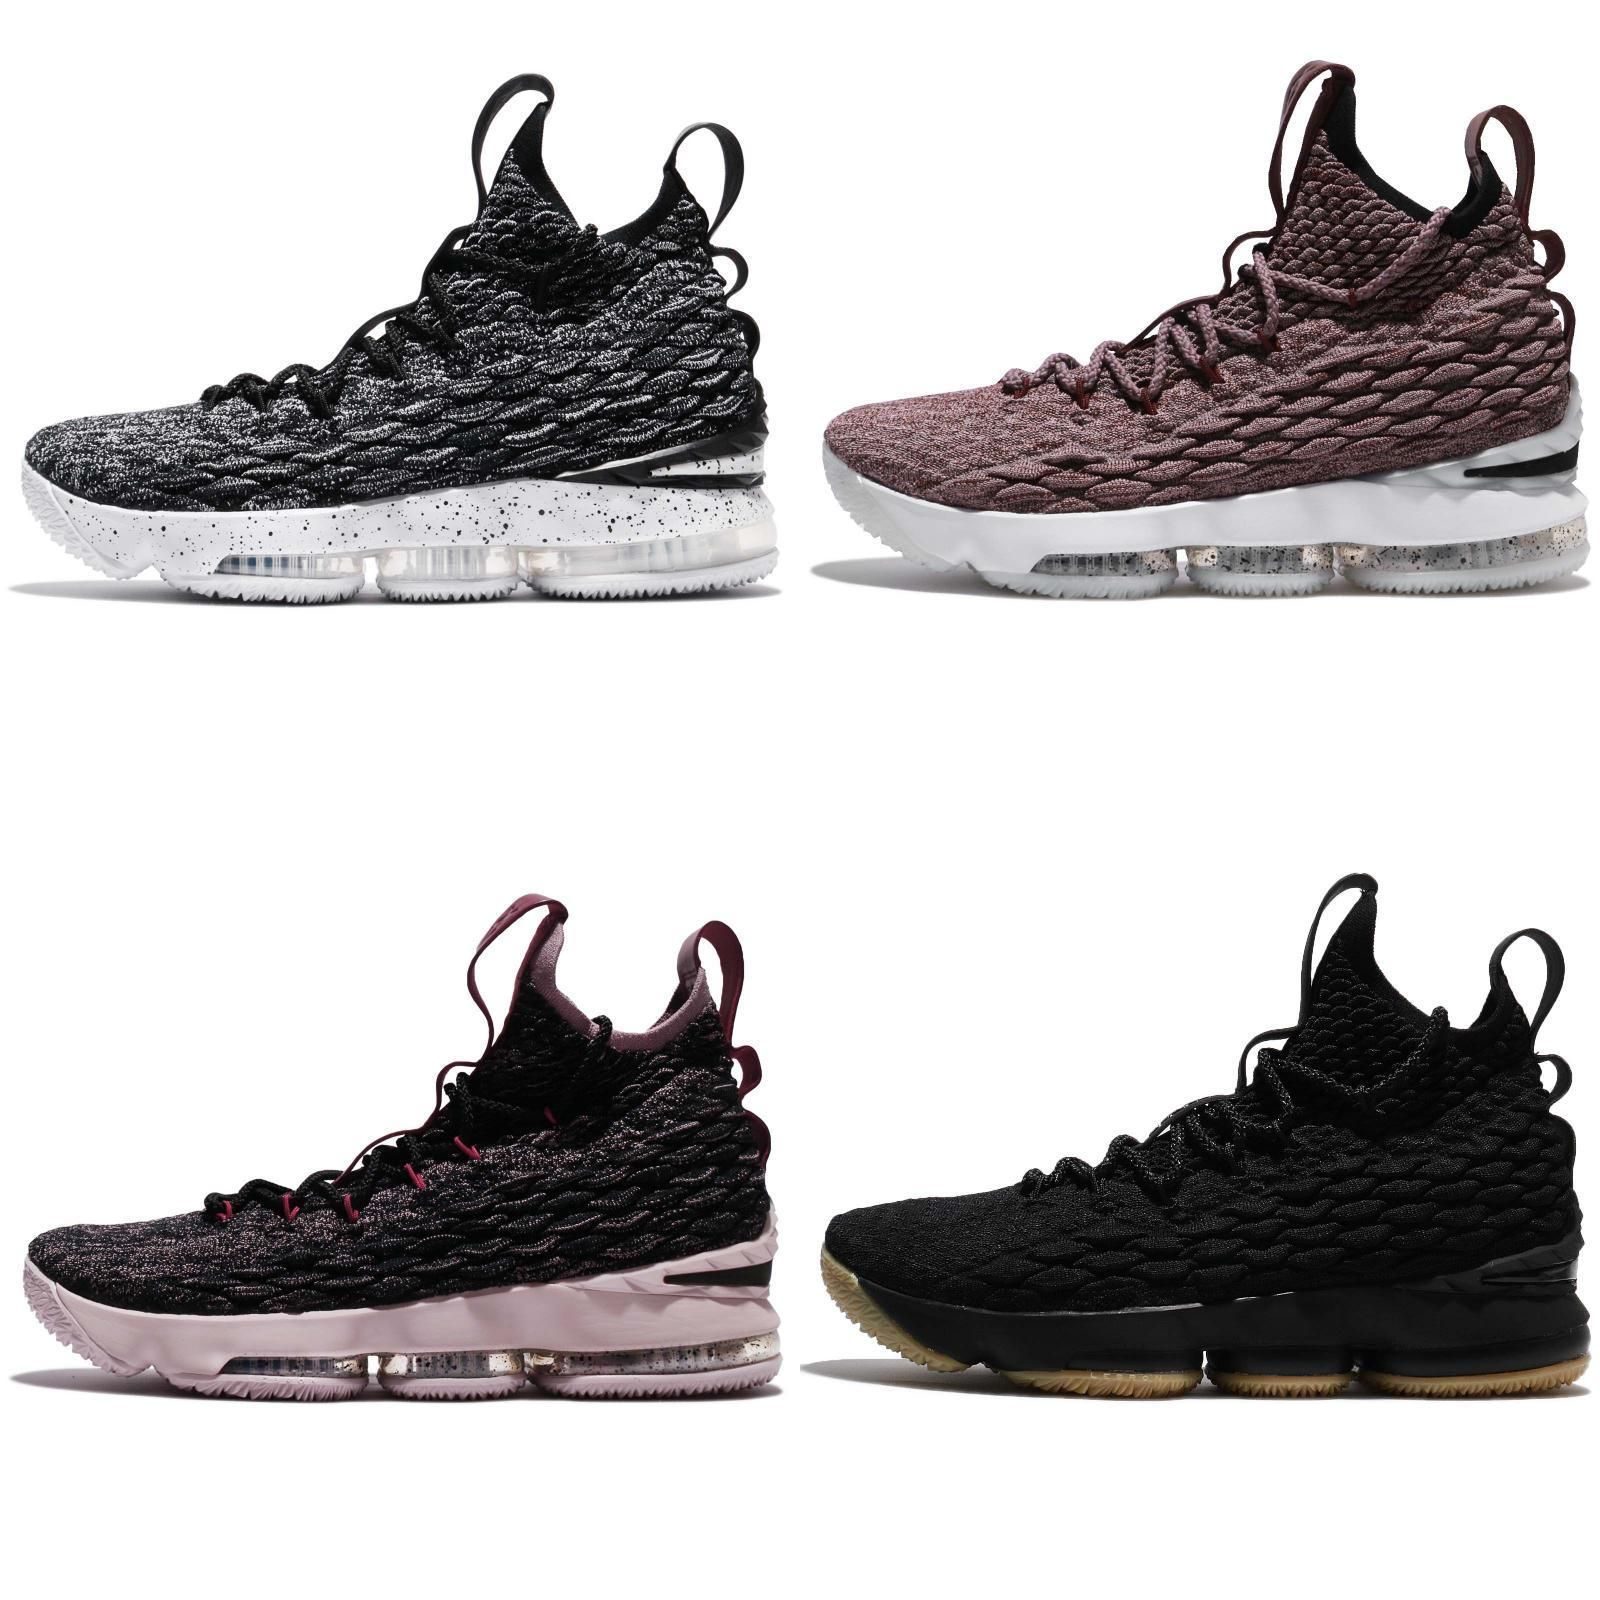 76ea6d463d5 Nike Lebron XV 15 EP LBJ King James Men Basketball Shoes Sneaker XDR Pick 1